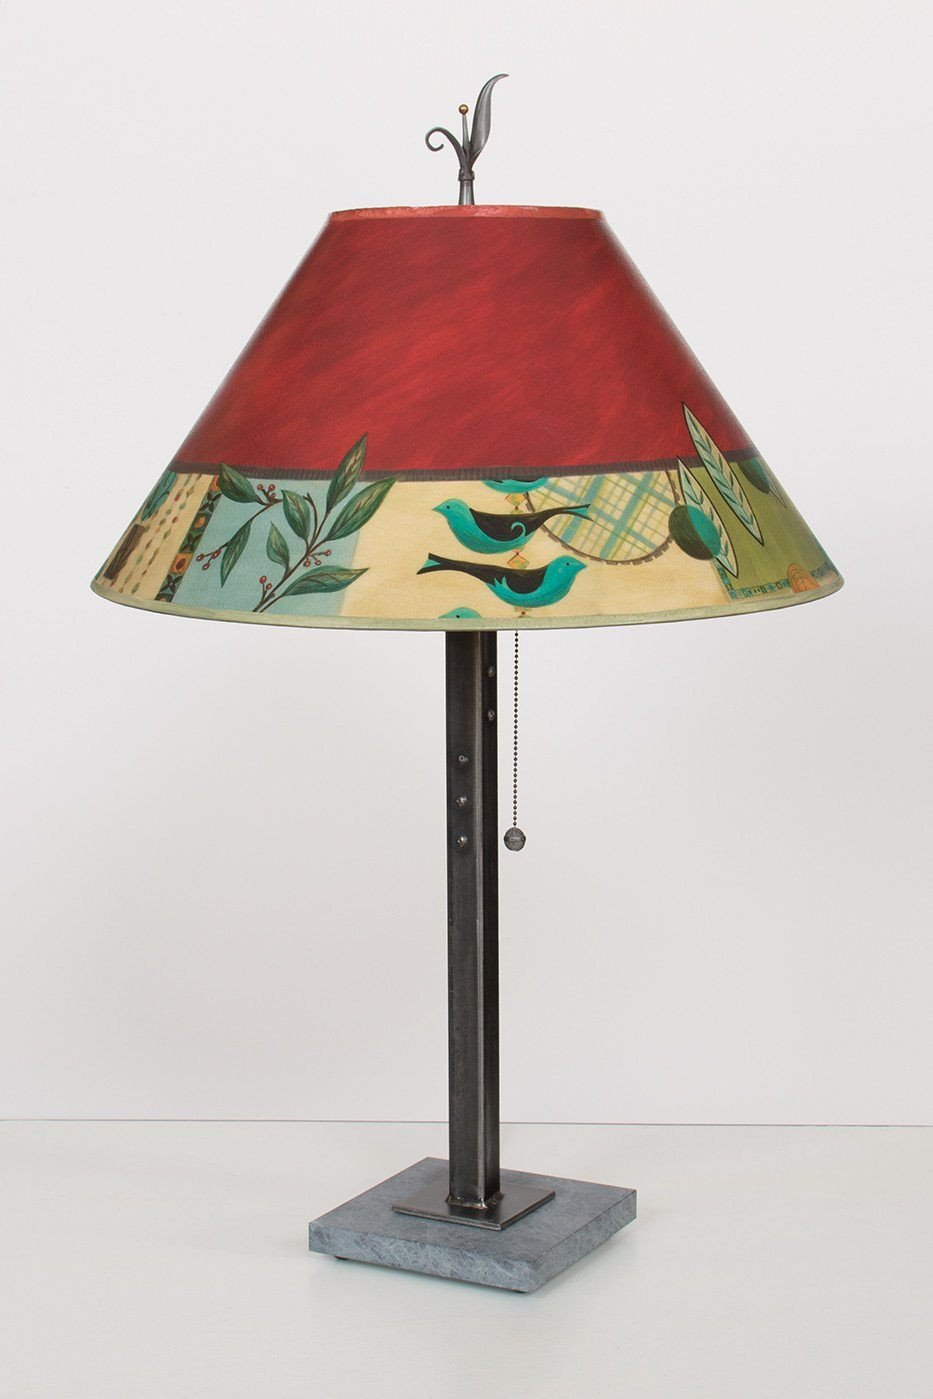 Steel Table Lamp on Italian Marble with Large Conical Shade in New Capri